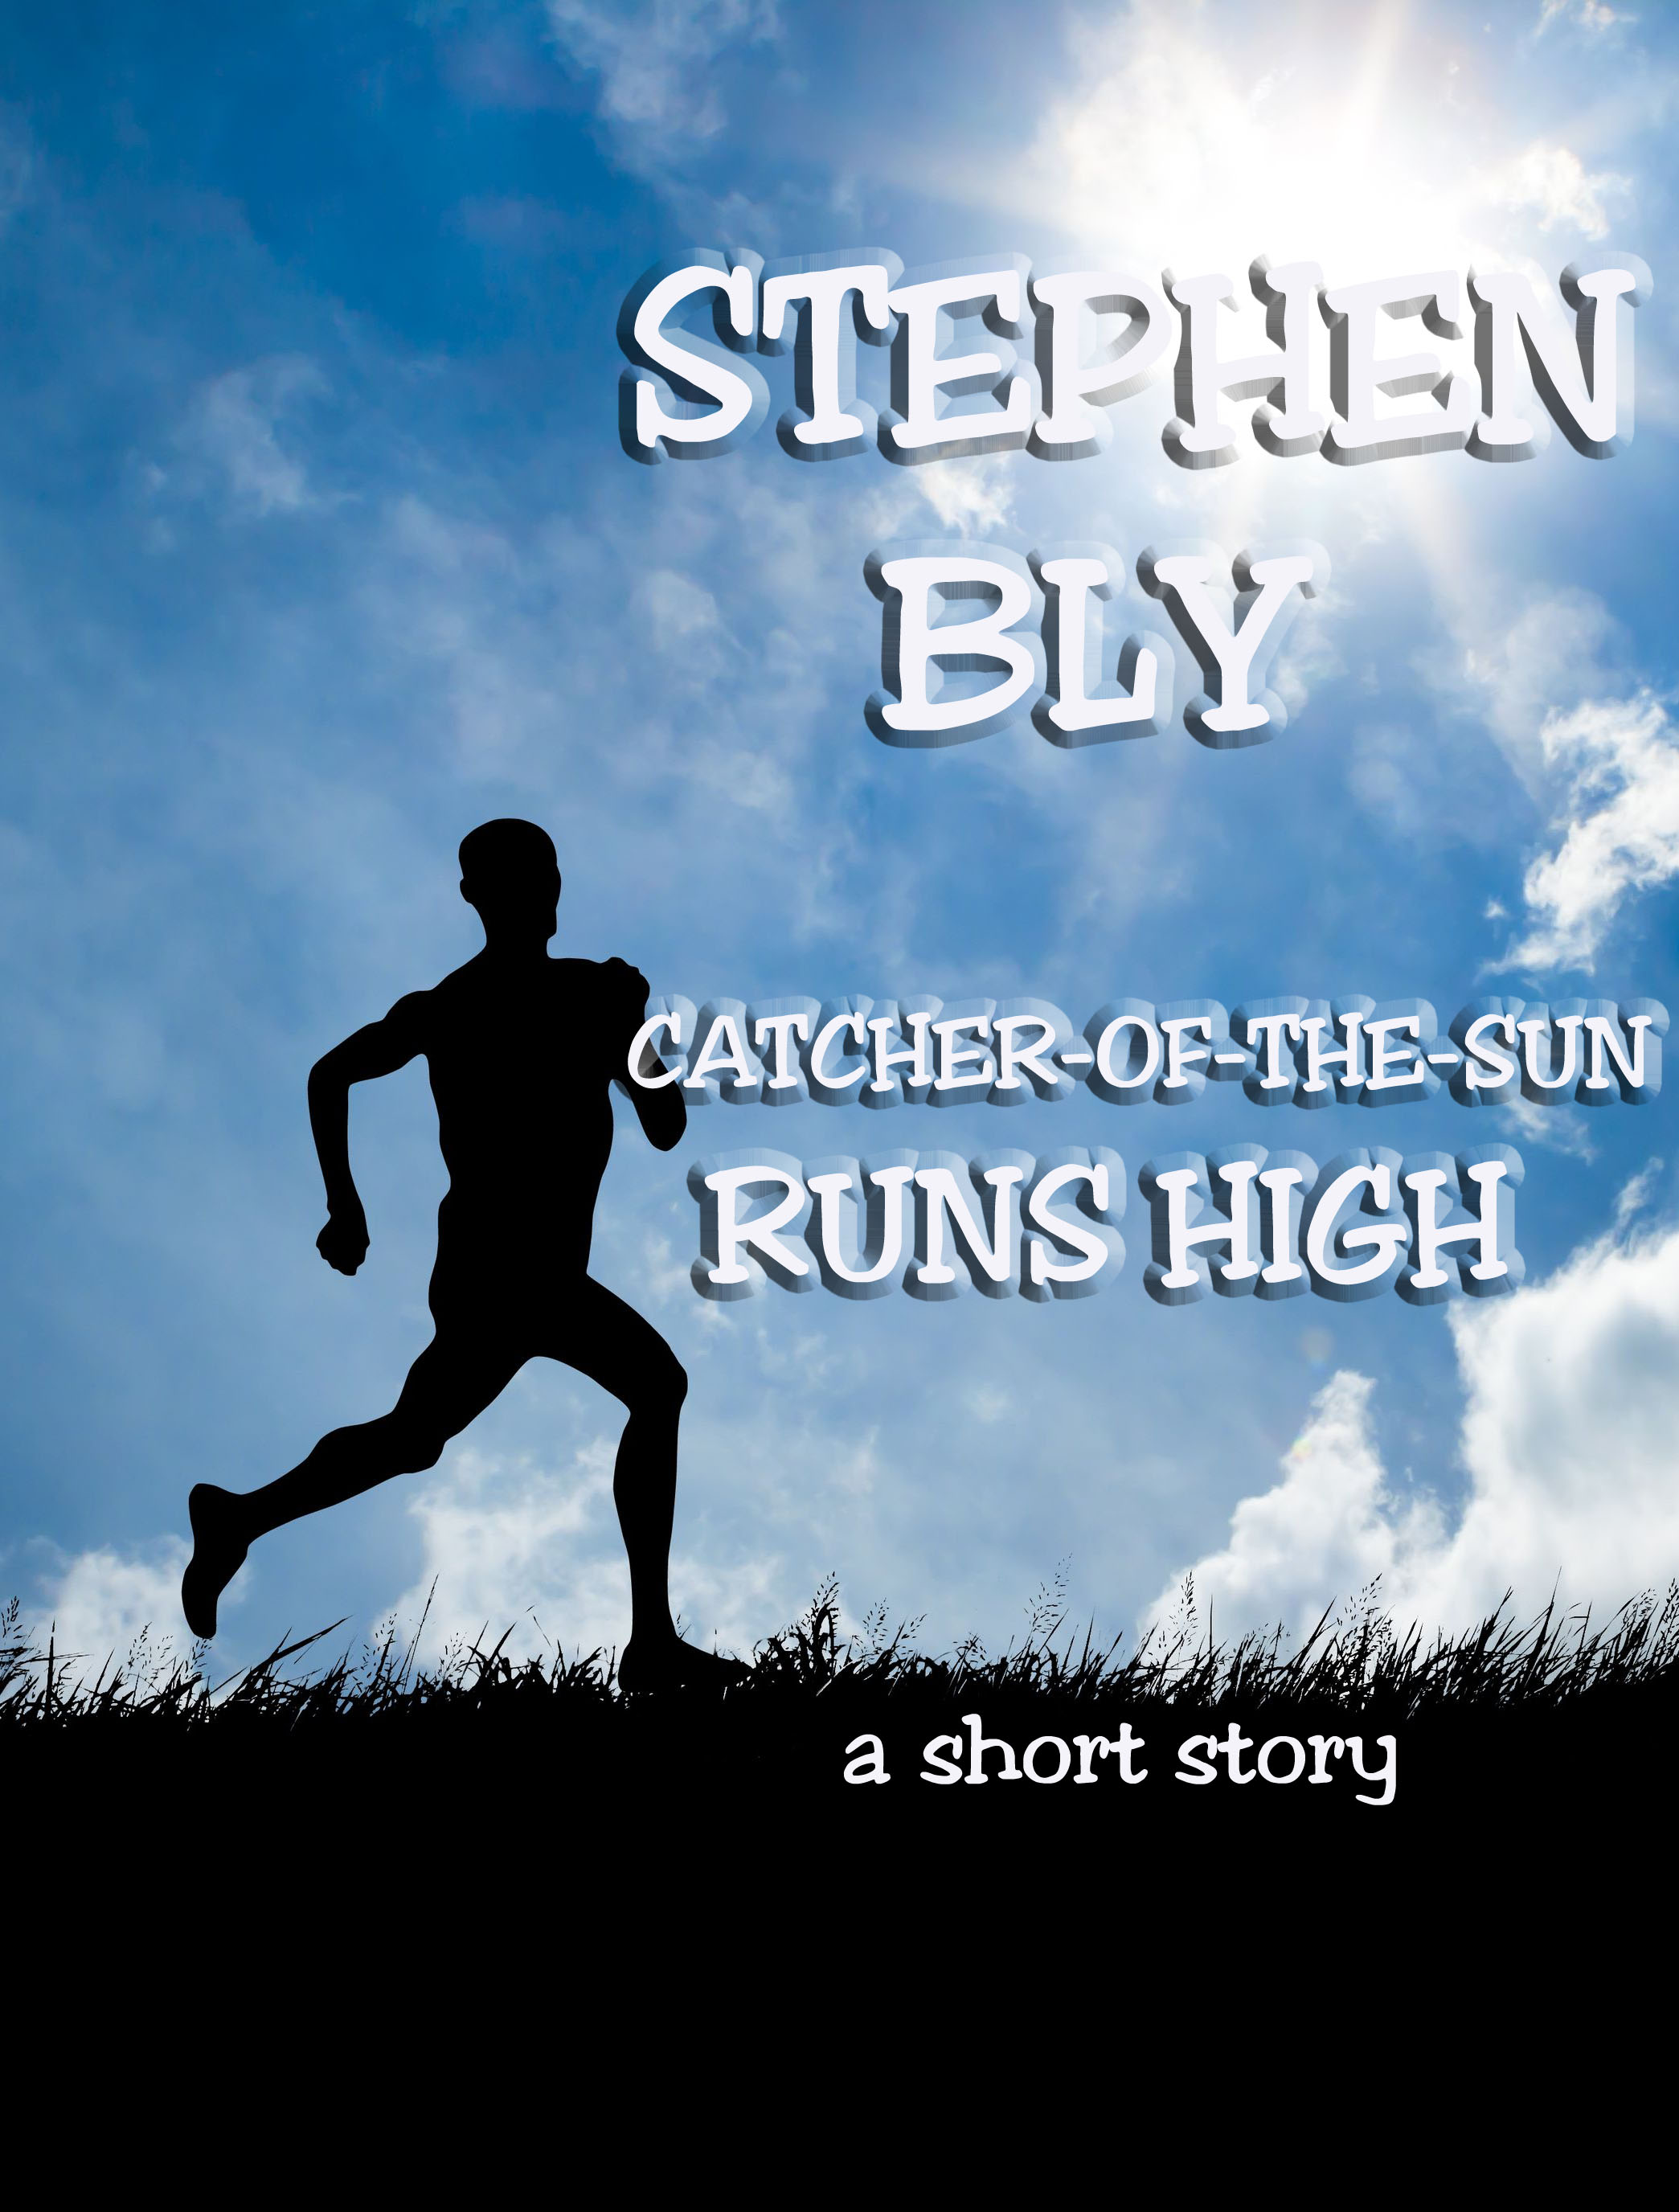 Digital Short Story – Catcher-of-the-Sun Runs High